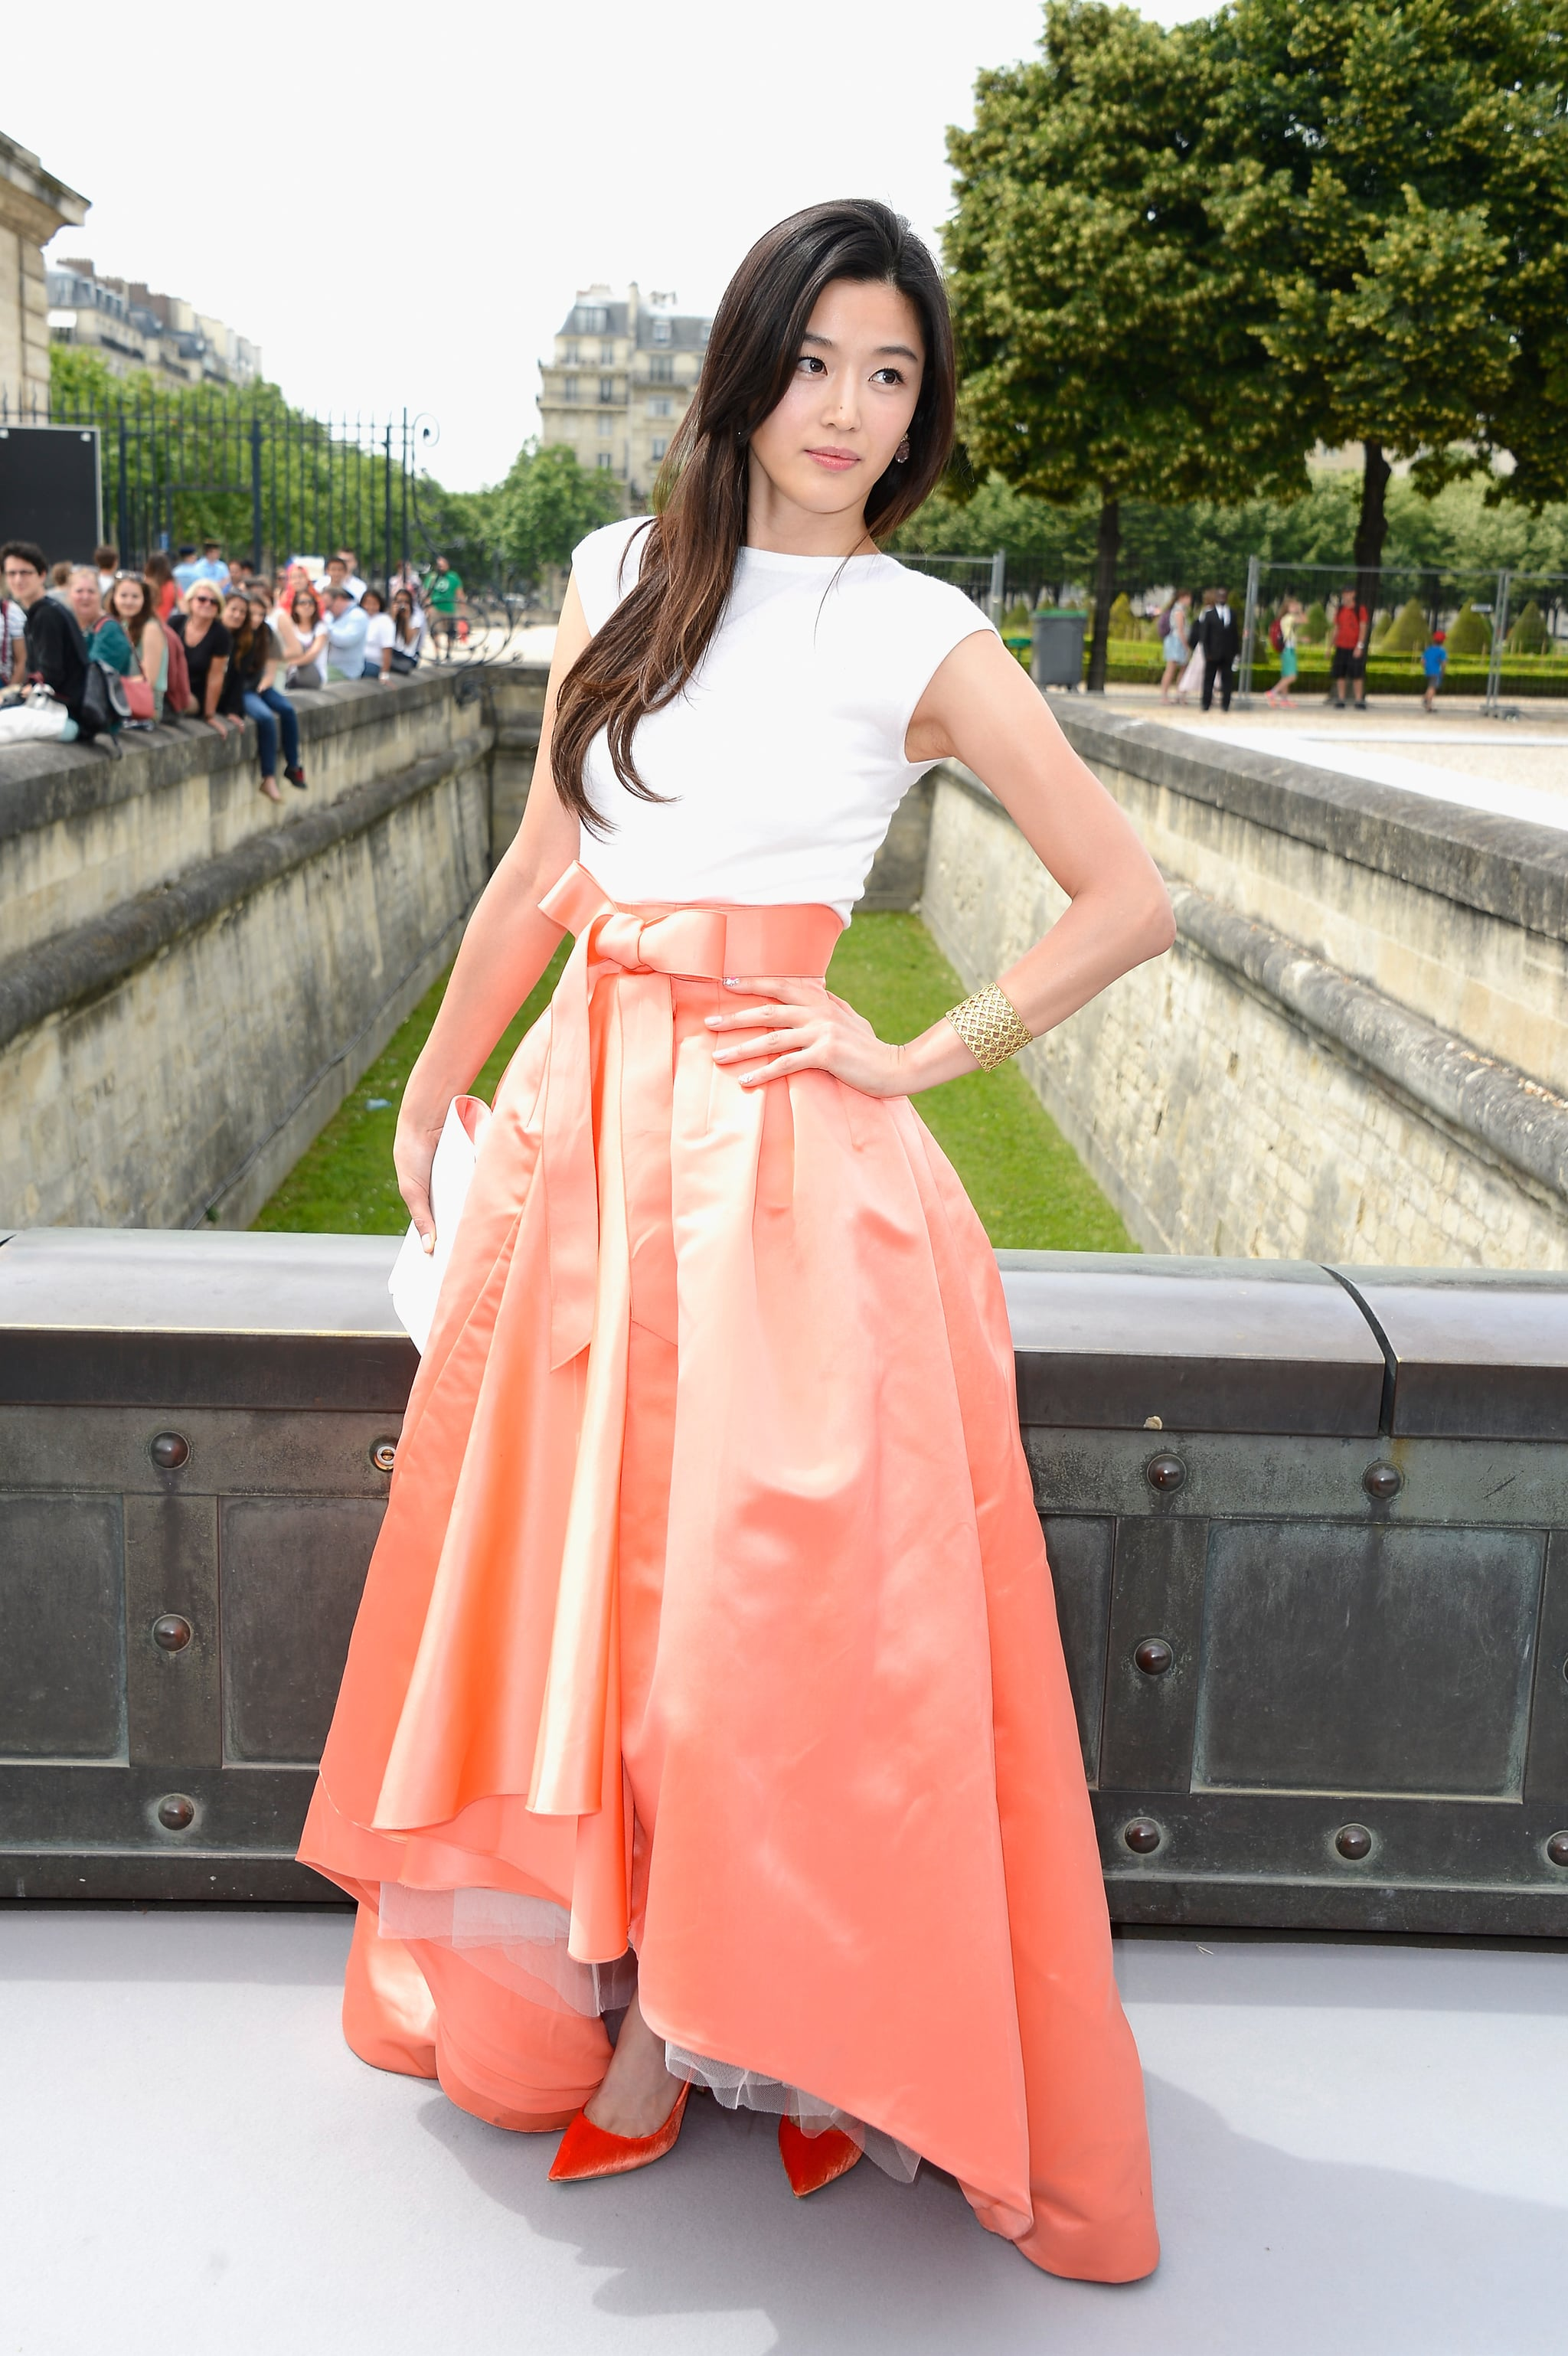 The more formal feel of couture collections means an attendee who's often suitably attired. While a little too much for our everyday, we love this guest's ball skirt.